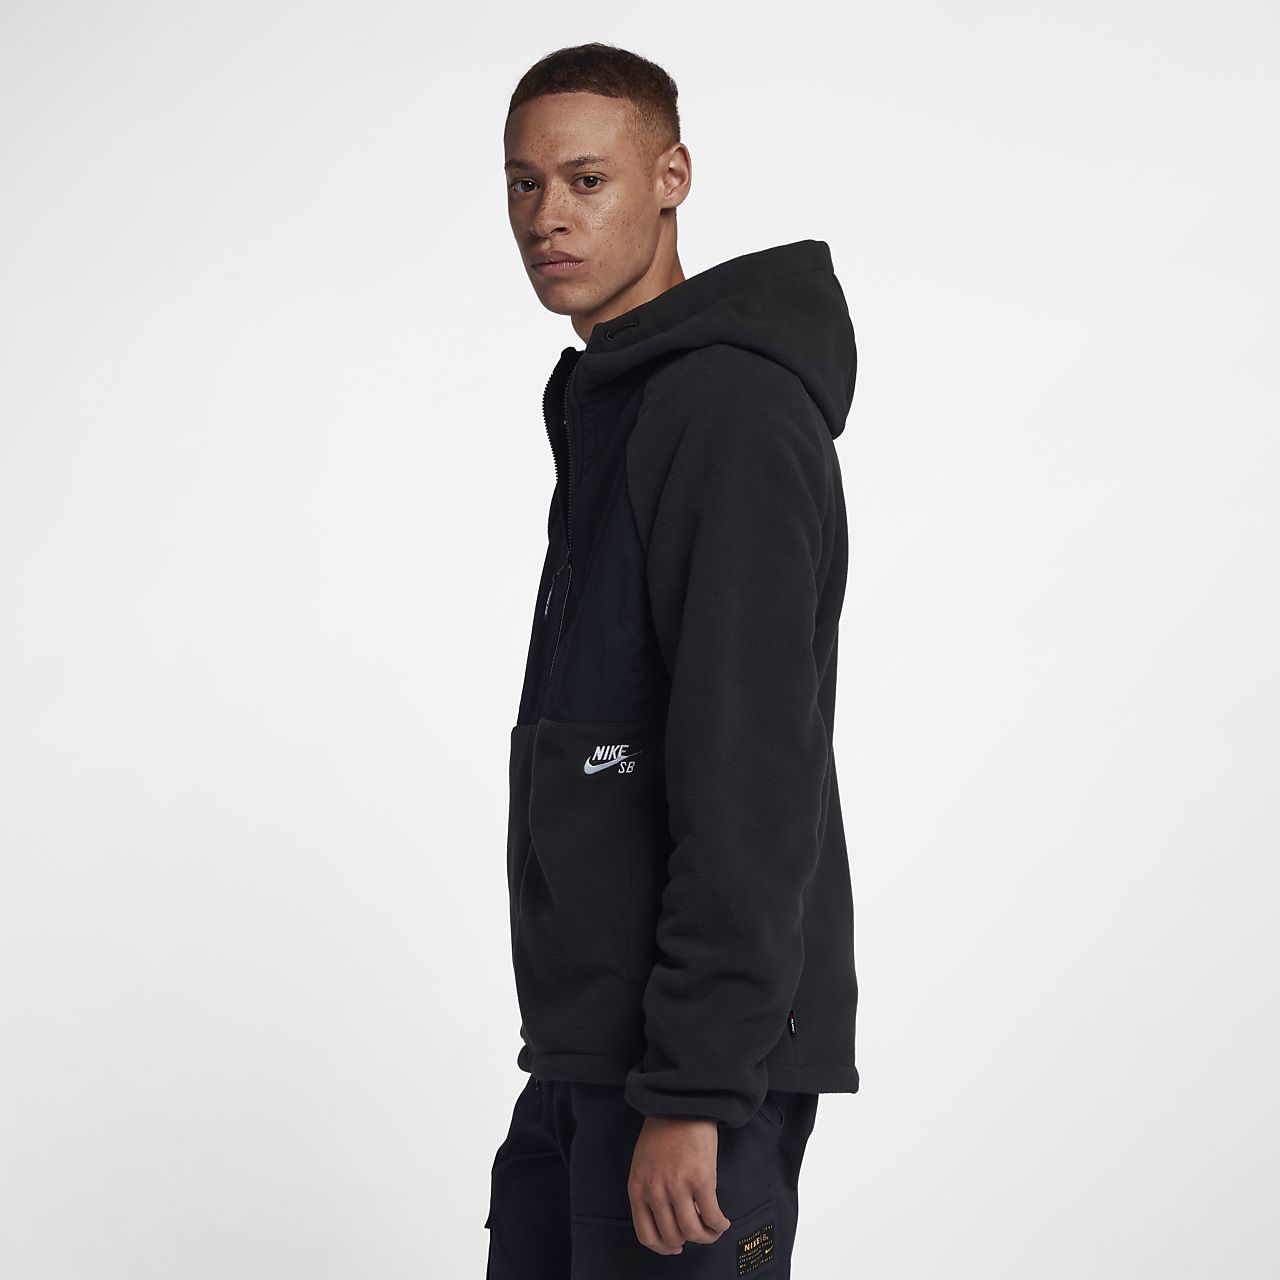 603500c3b4b53 Nike SB Winterized Men s Full-Zip Skate Hoodie. Nike.com SA